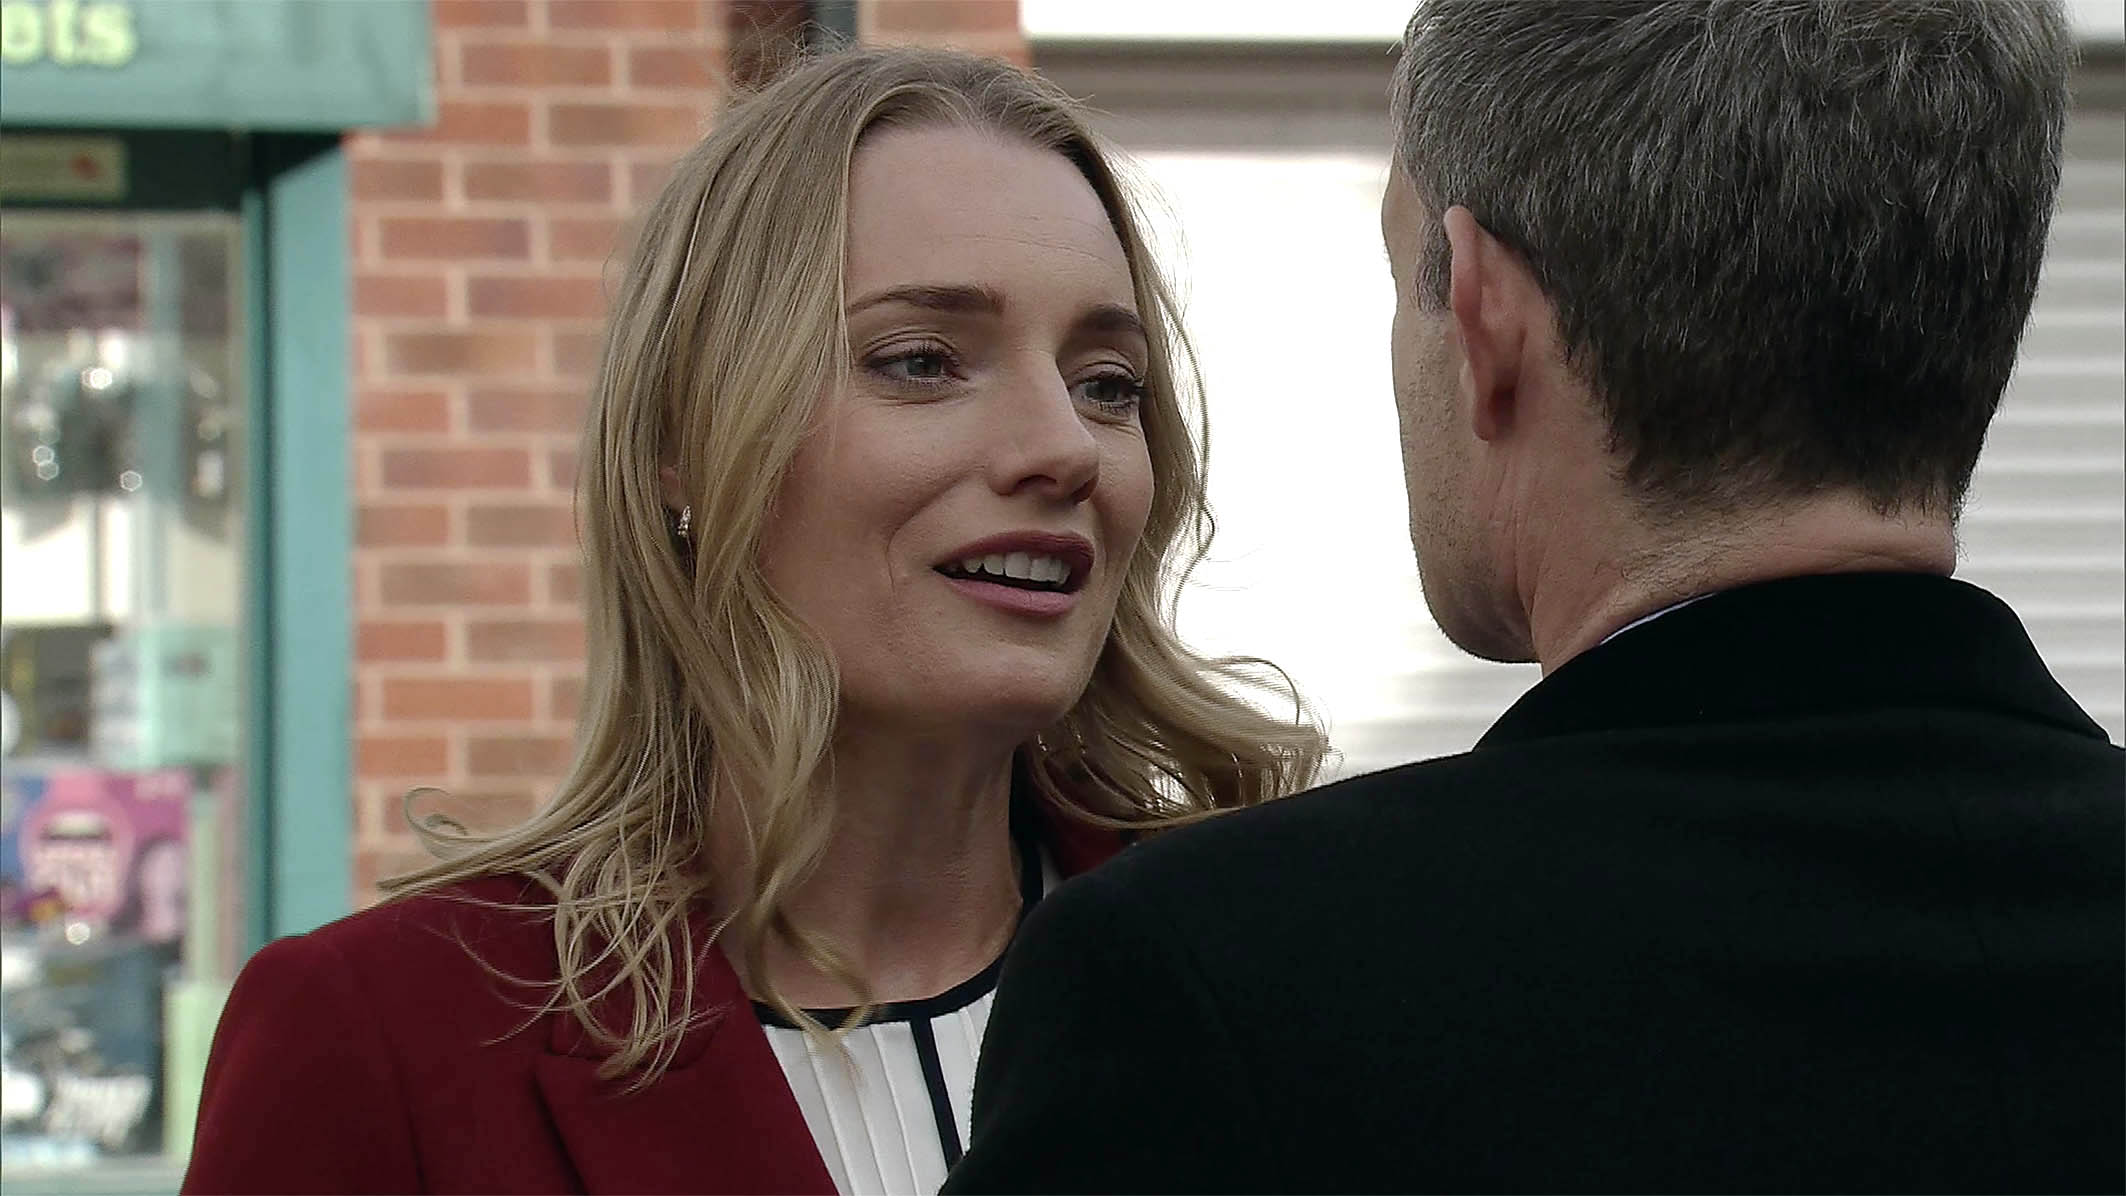 Here's where you recognise Nick Tilsley's wife Elsa from in Coronation Street